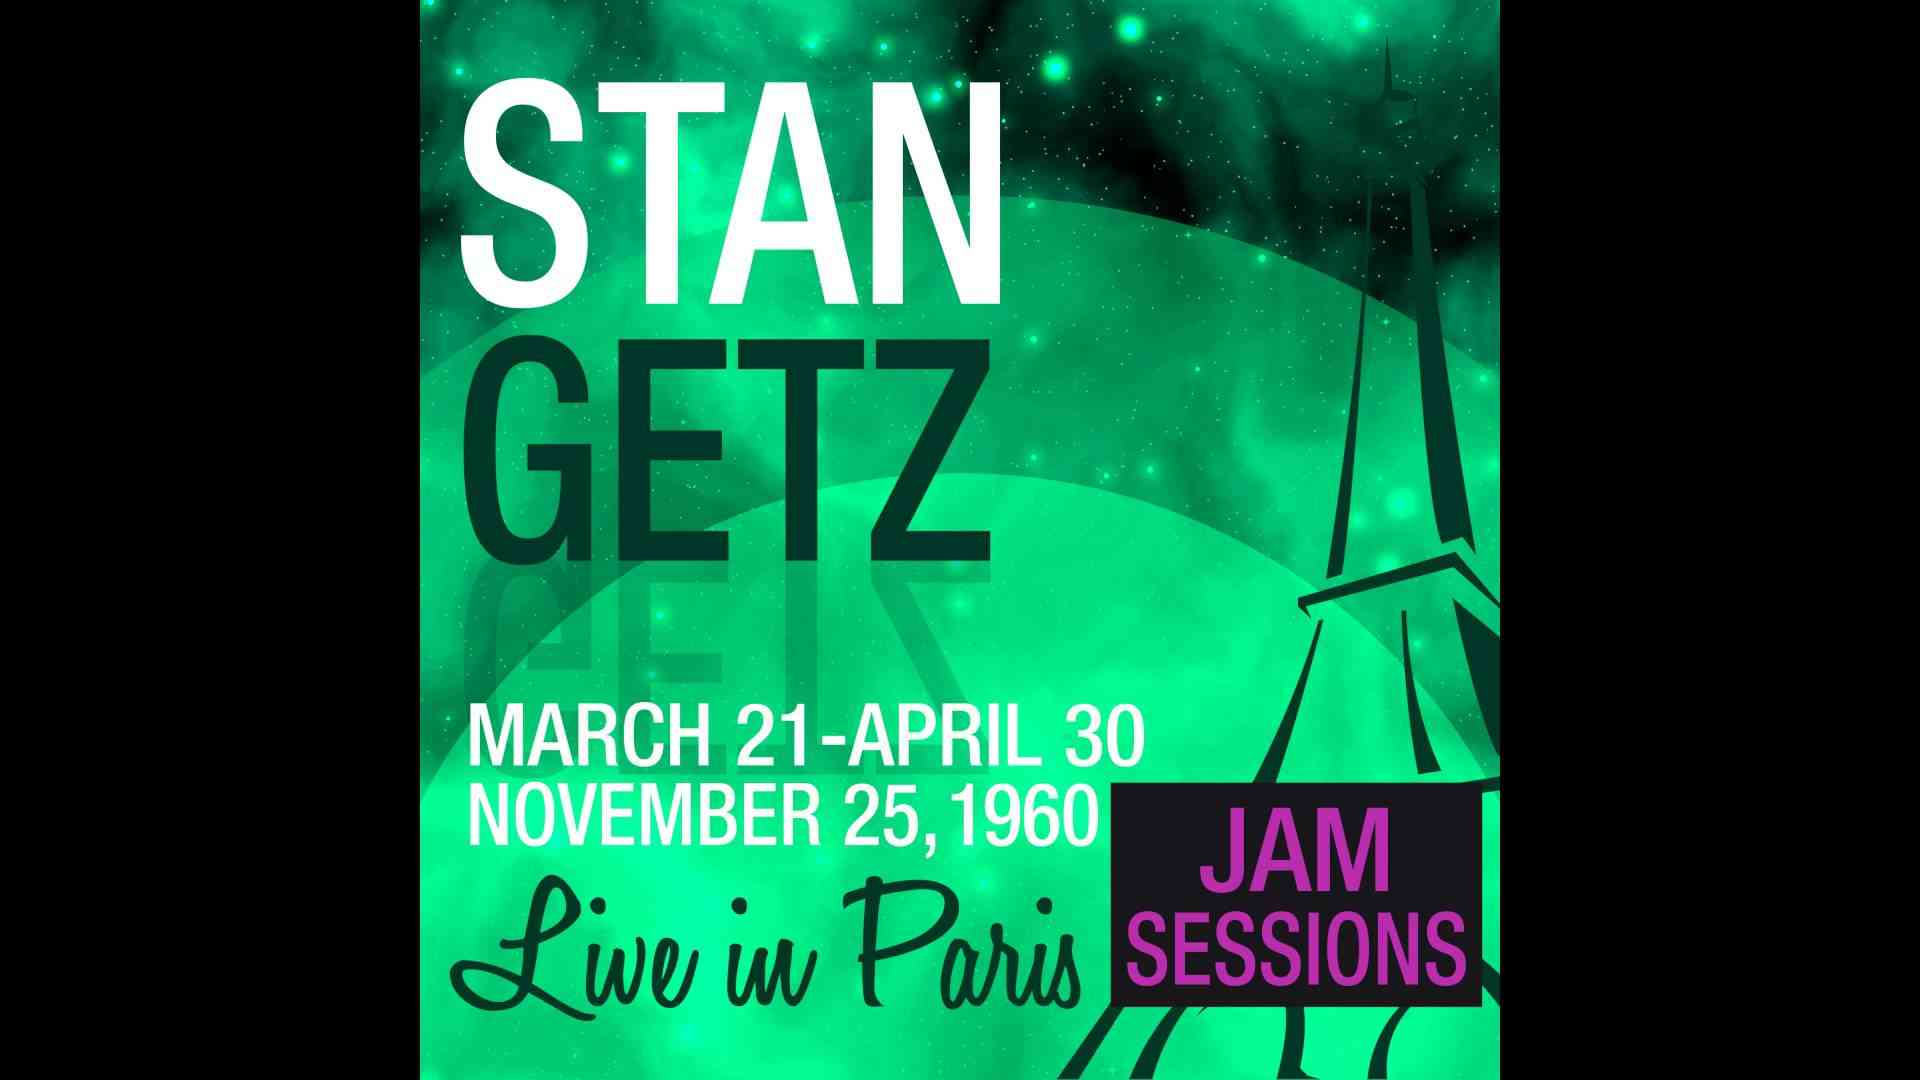 Stan Getz - Summertime (Live March 21, 1960) - YouTube